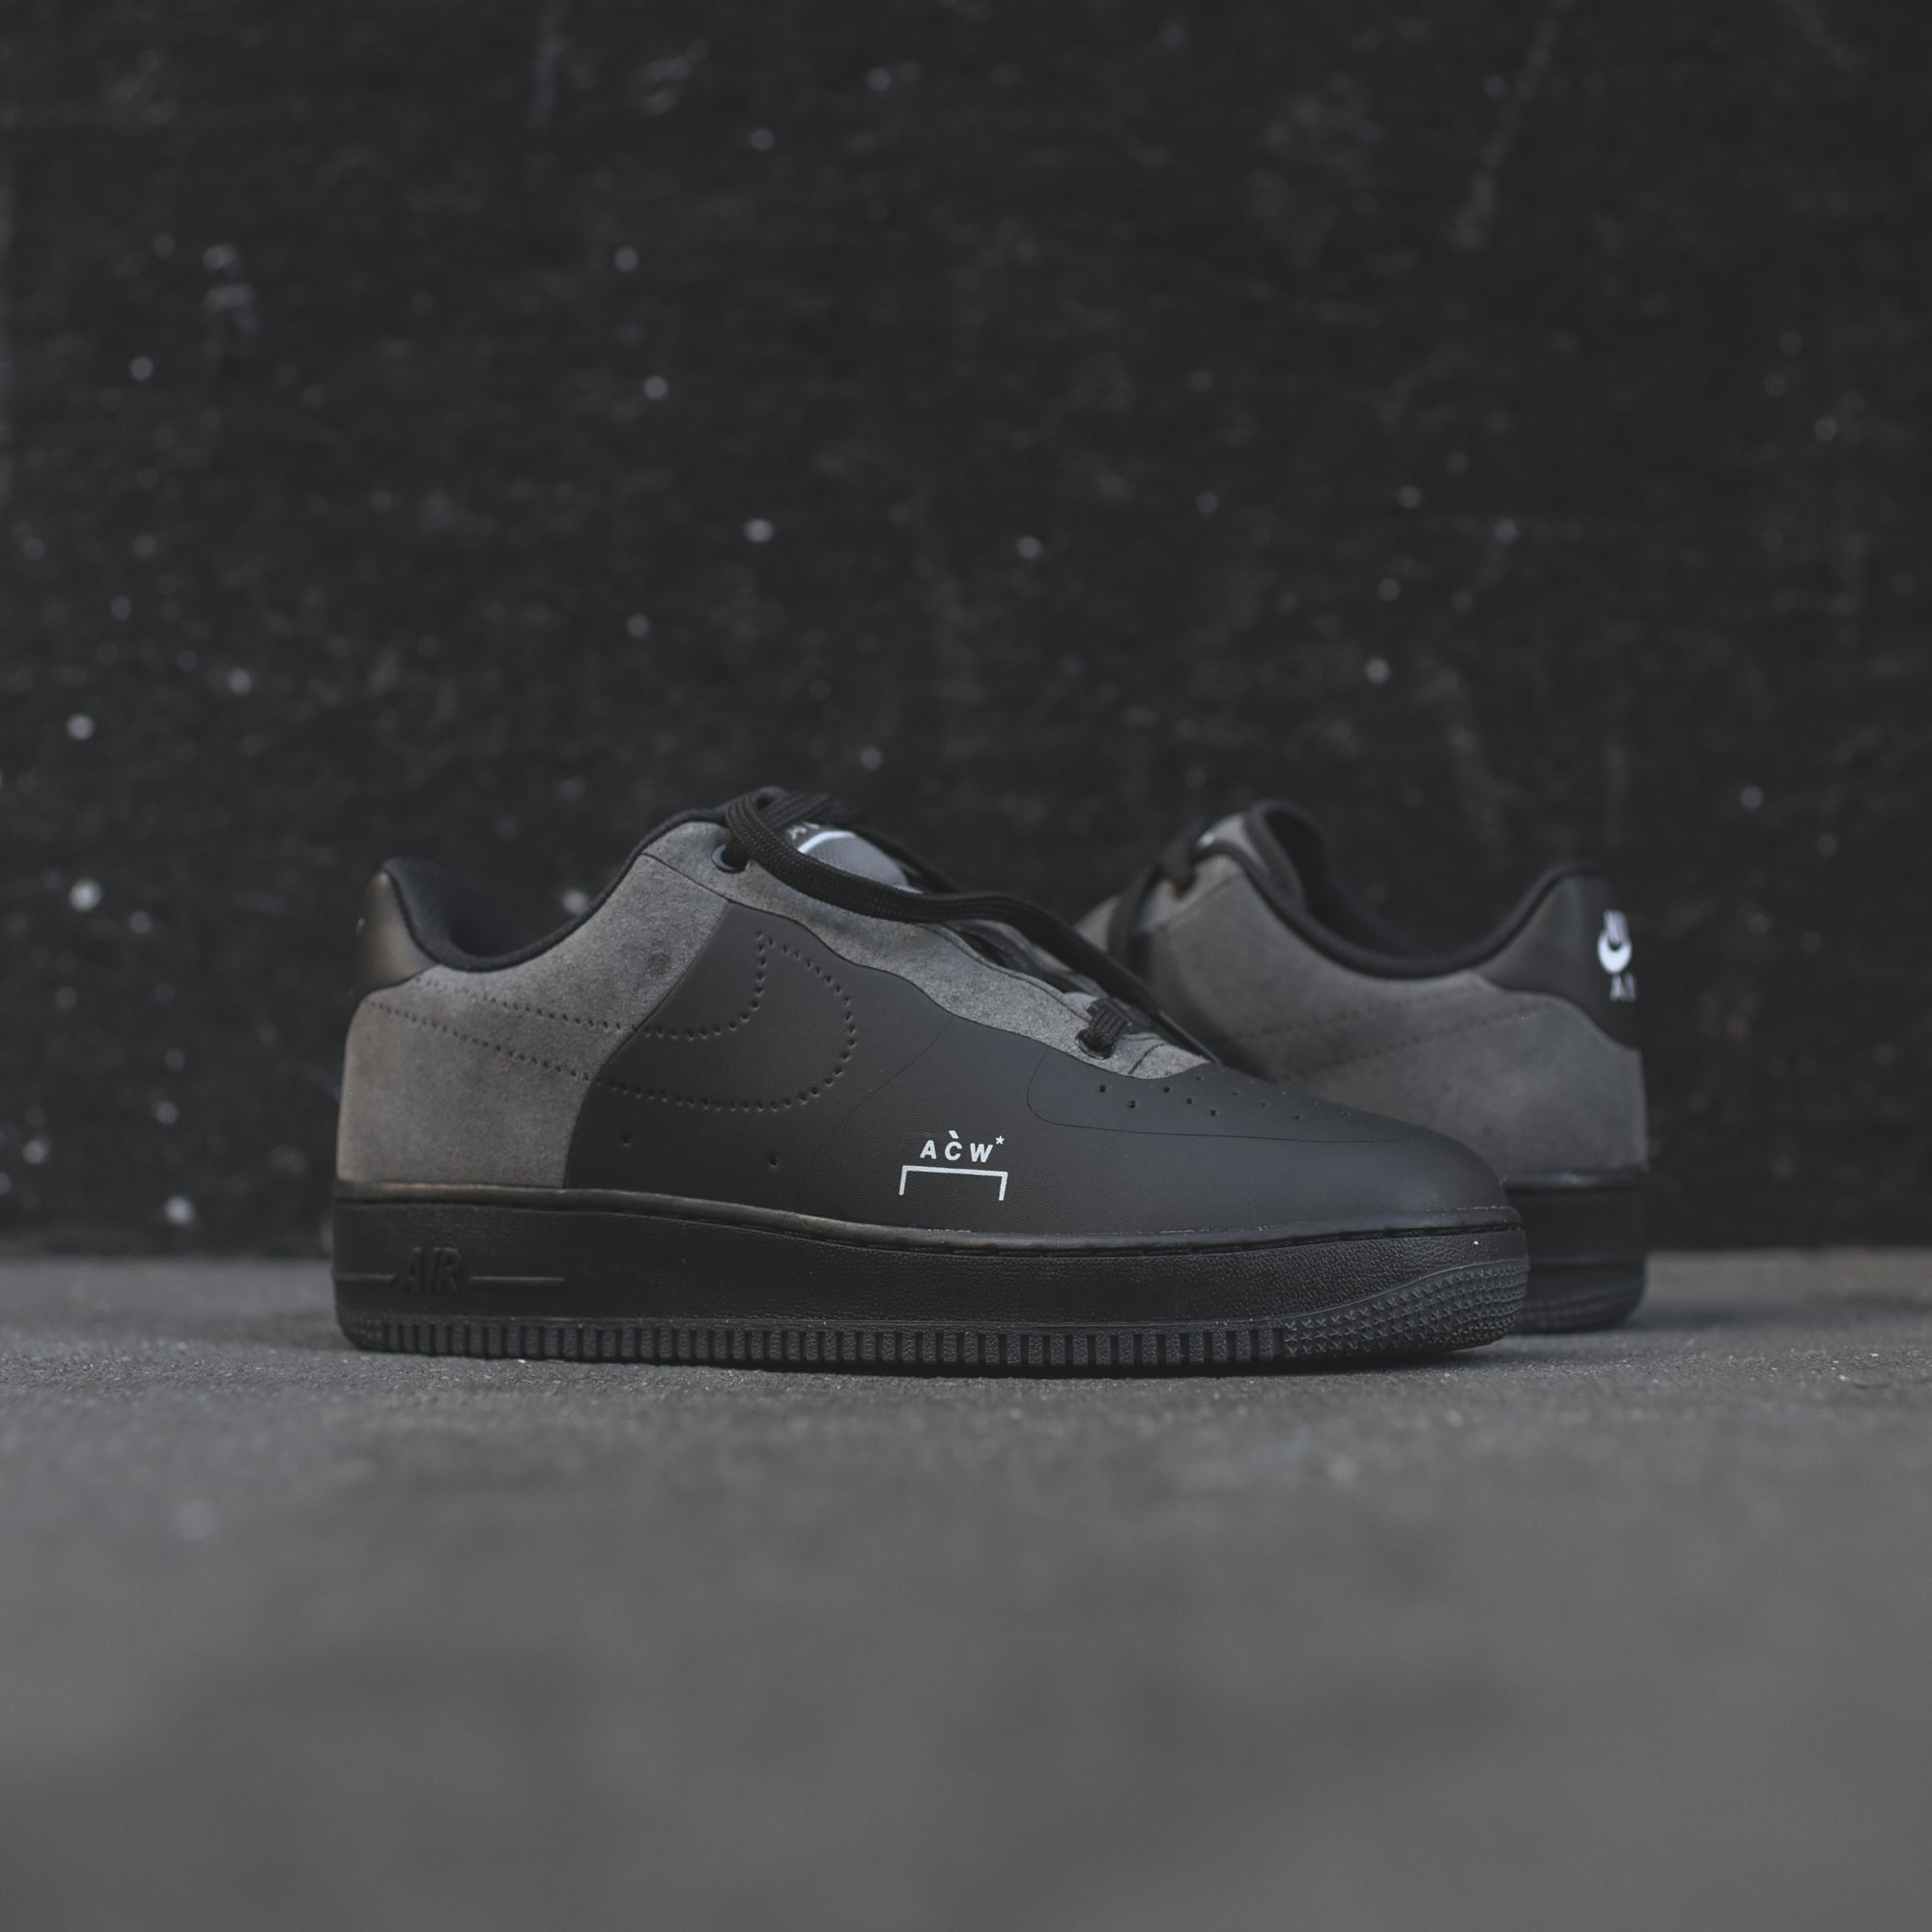 Nike Air Force 1 07 ACW : Sneakers   Sneakers fashion